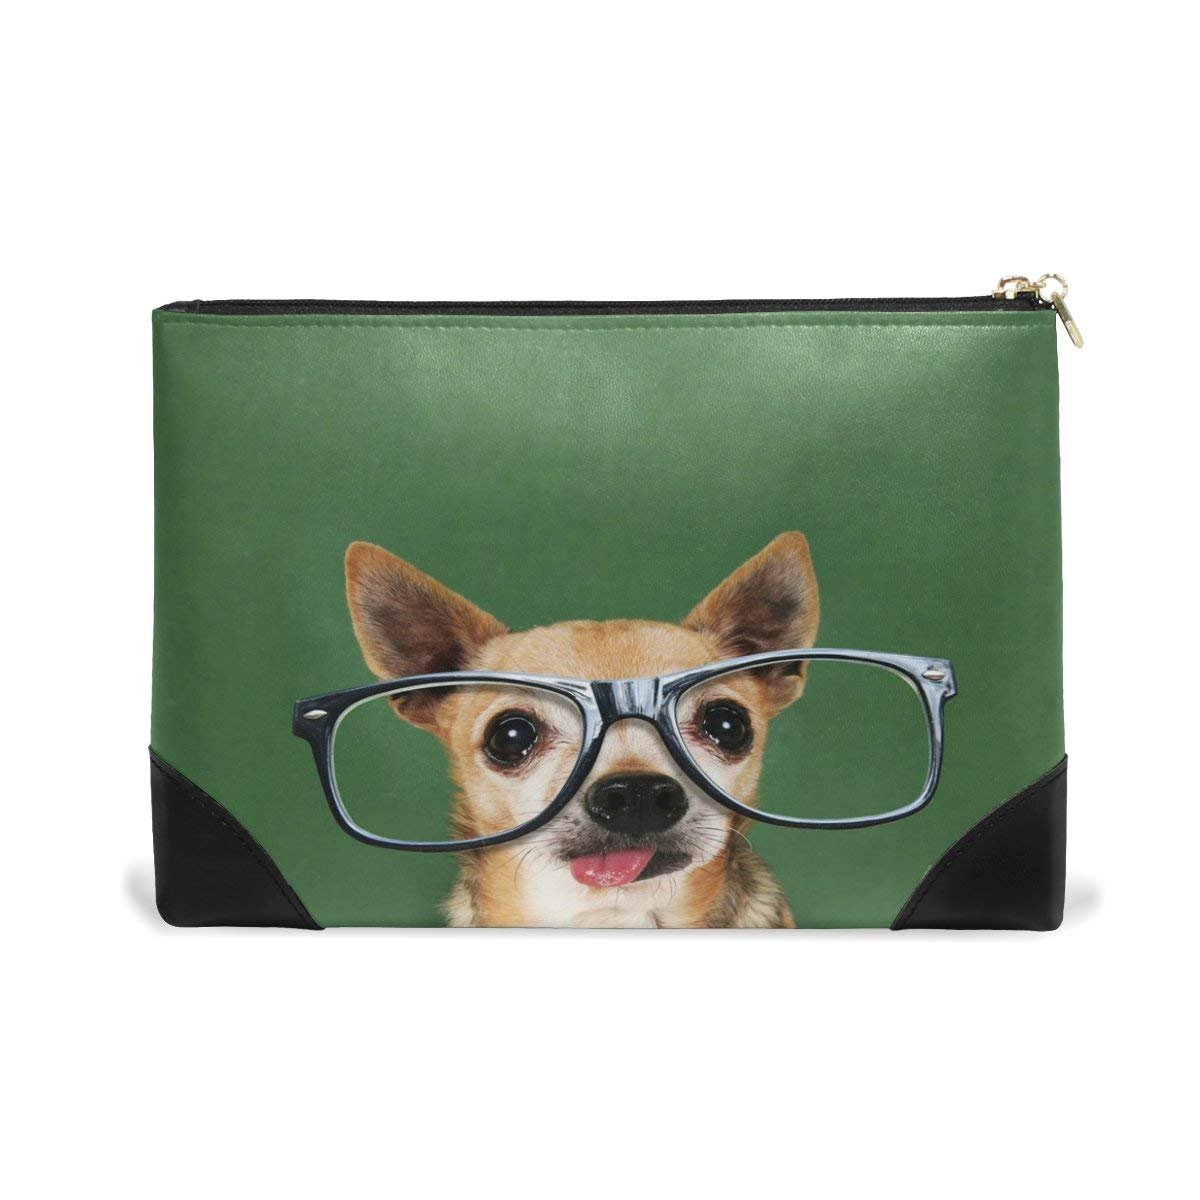 BLEFE Cool Chihuahua Puppy Dog Face with Glasses Makeup Cosmetic Bag Pouch Travel Bag for Women Girls